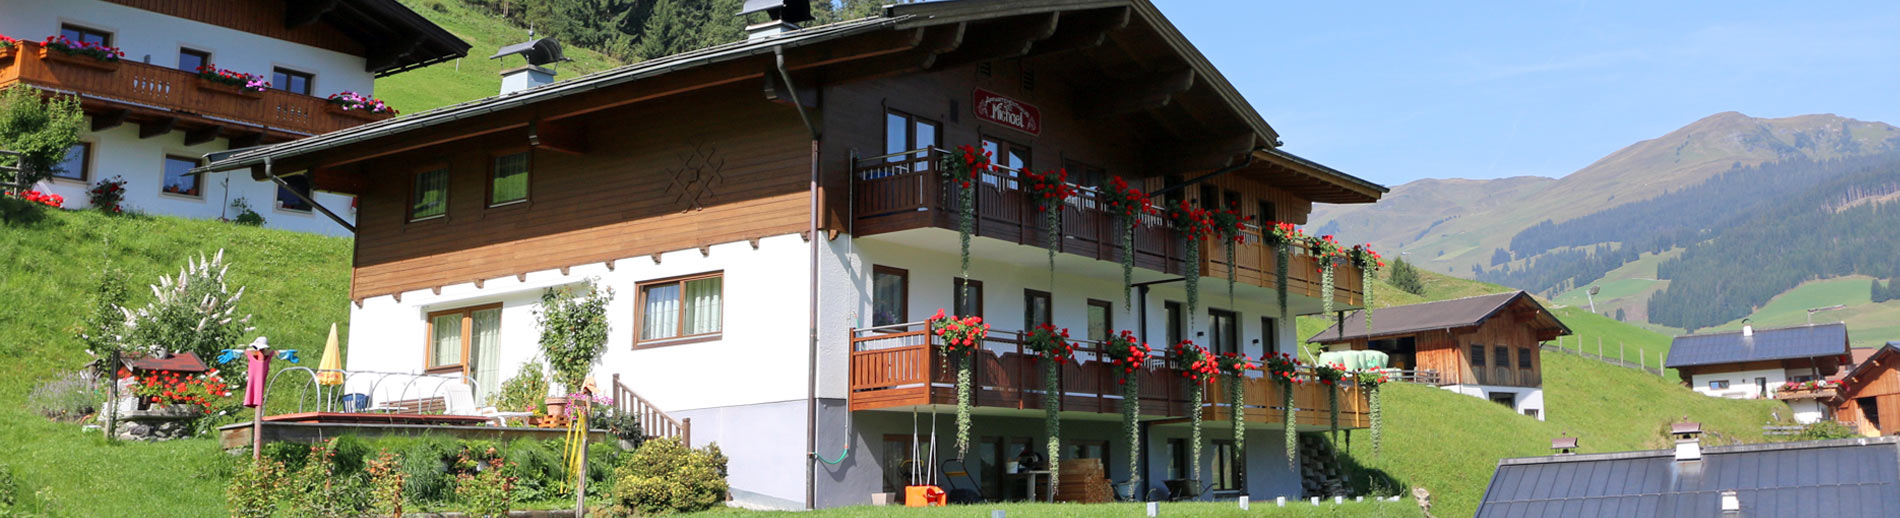 Appartements in Hinterglemm